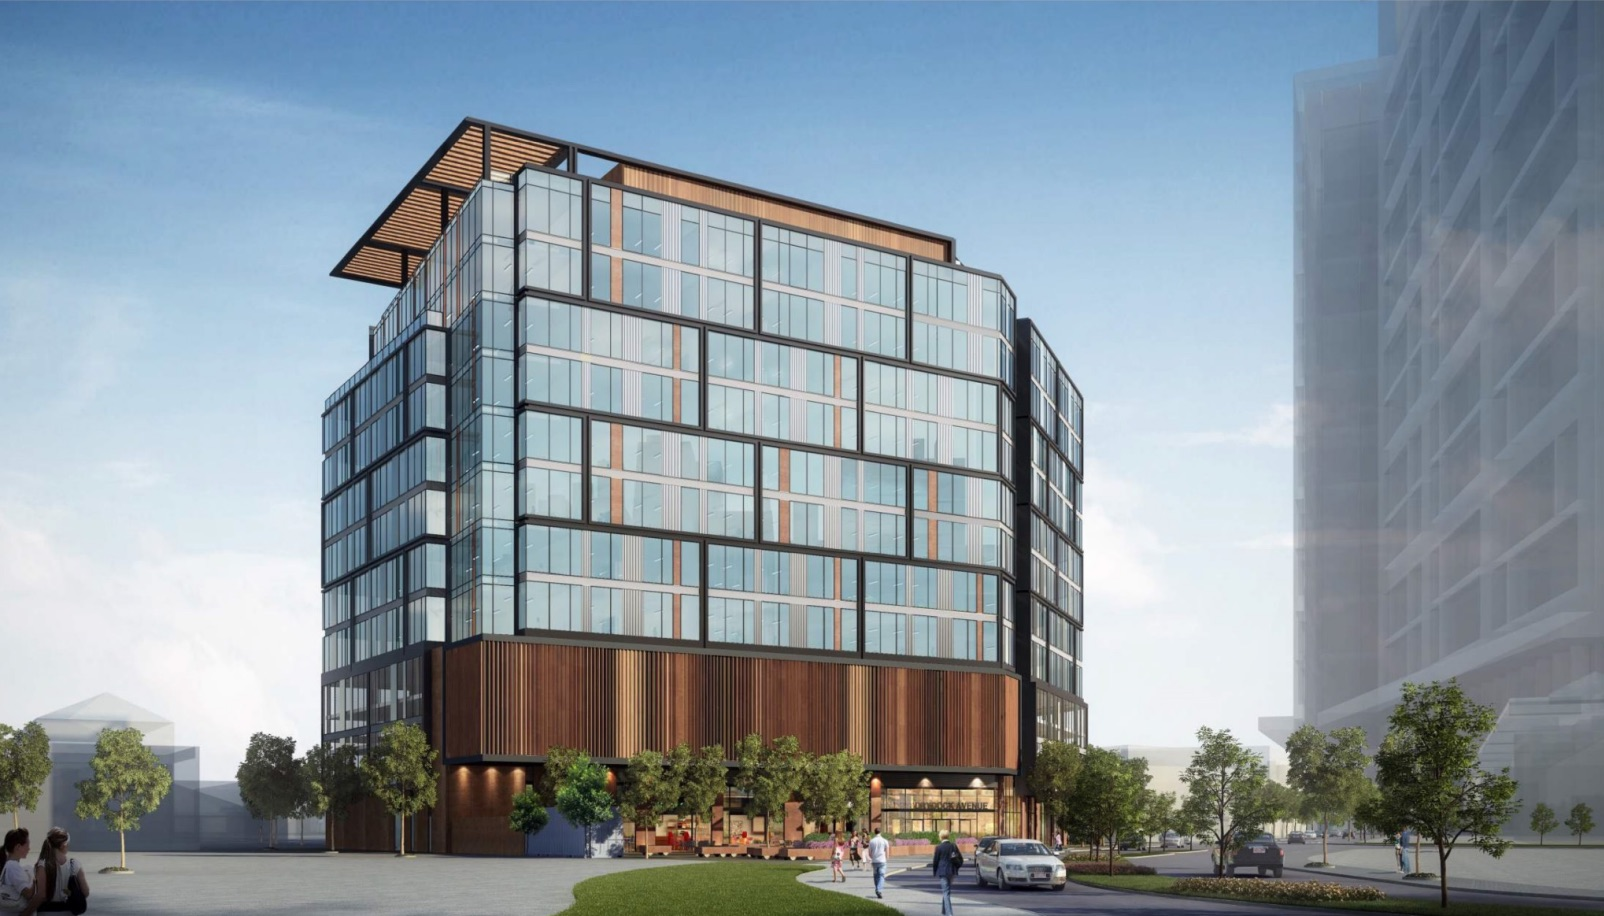 Parcel q1 boston marine industrial park seaport district boston proposed office retail building development skanska sga architectural rendering